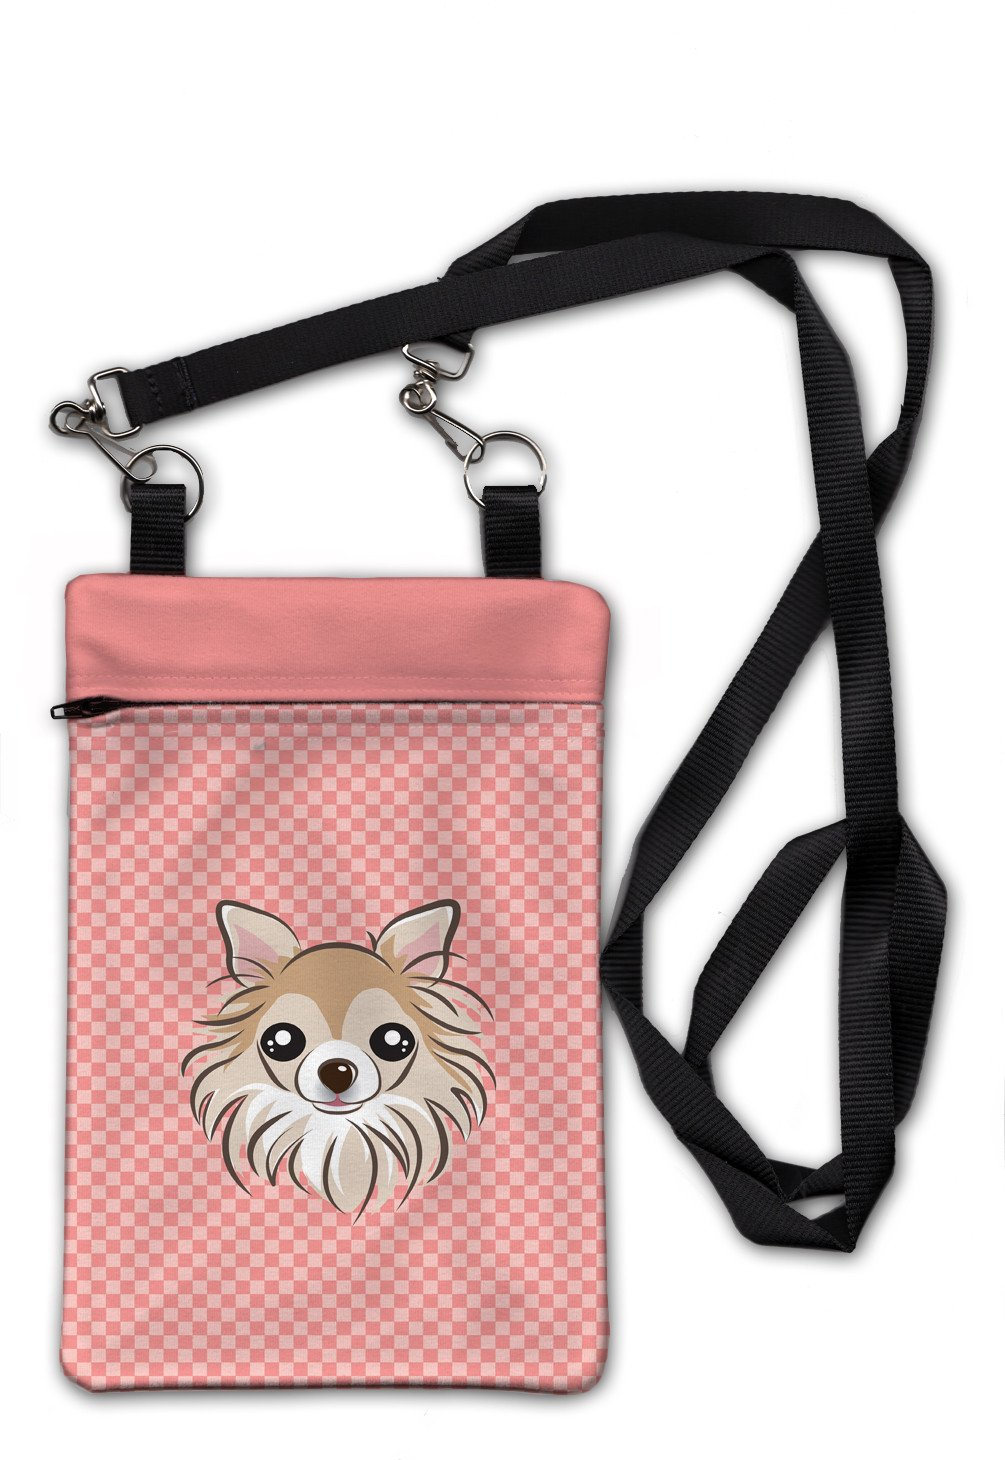 Checkerboard Pink Chihuahua Crossbody Bag Purse BB1251OBDY by Caroline's Treasures